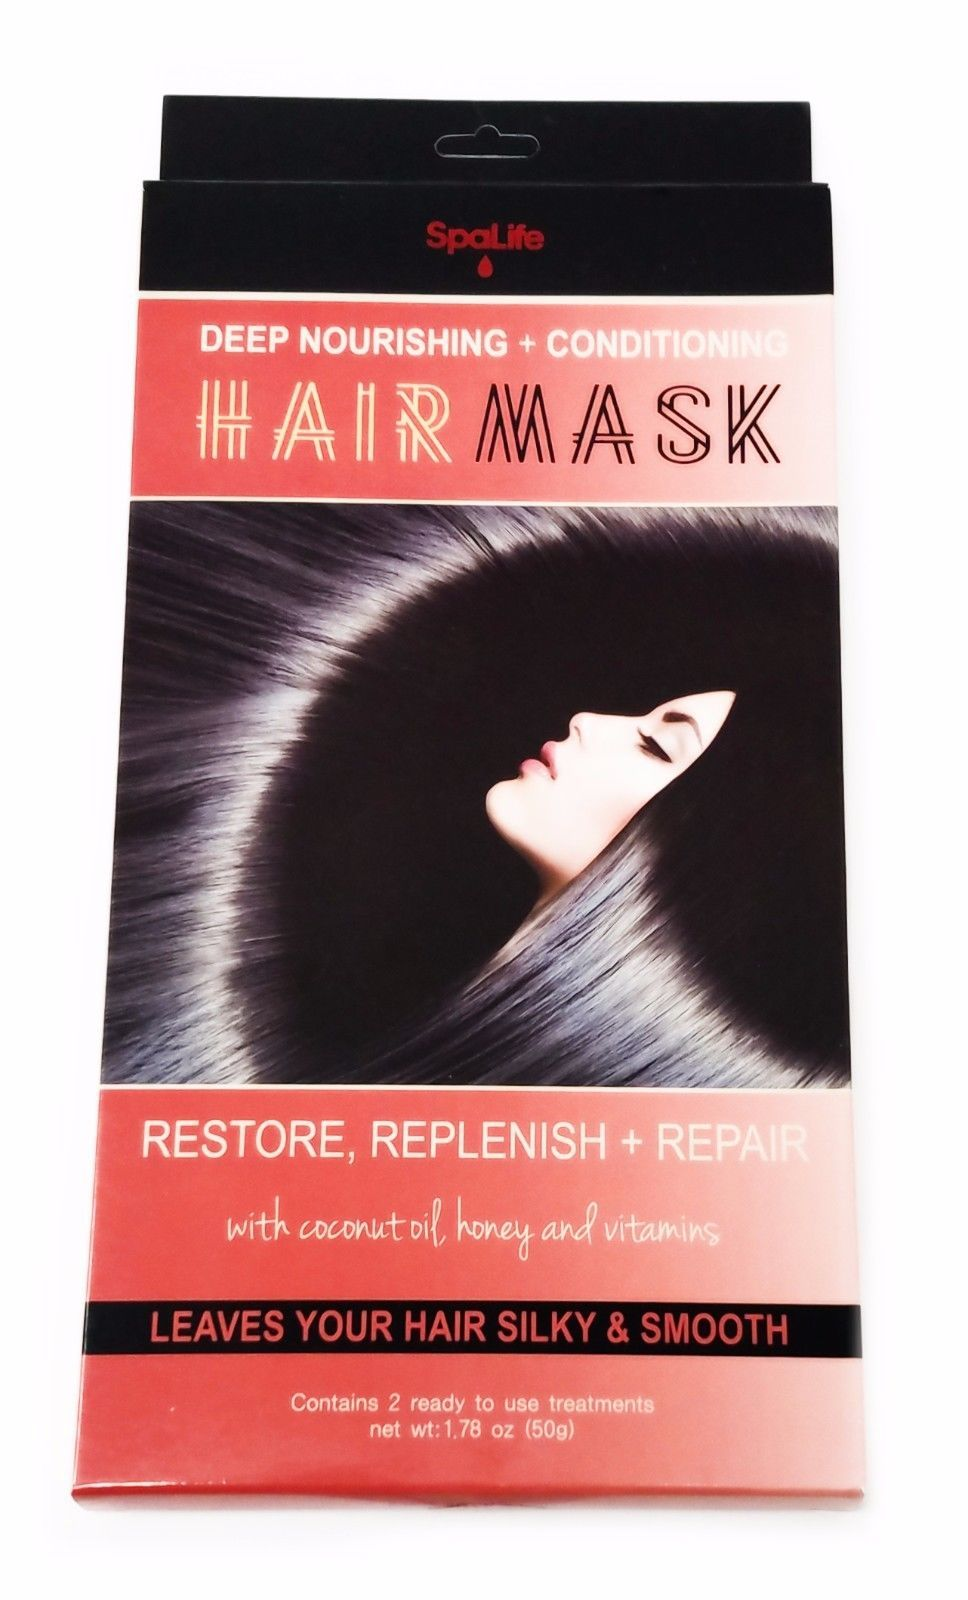 SpaLife Deep Nourishing + Conditioning Hair Mask, 2 Ready-to-Use Treatments